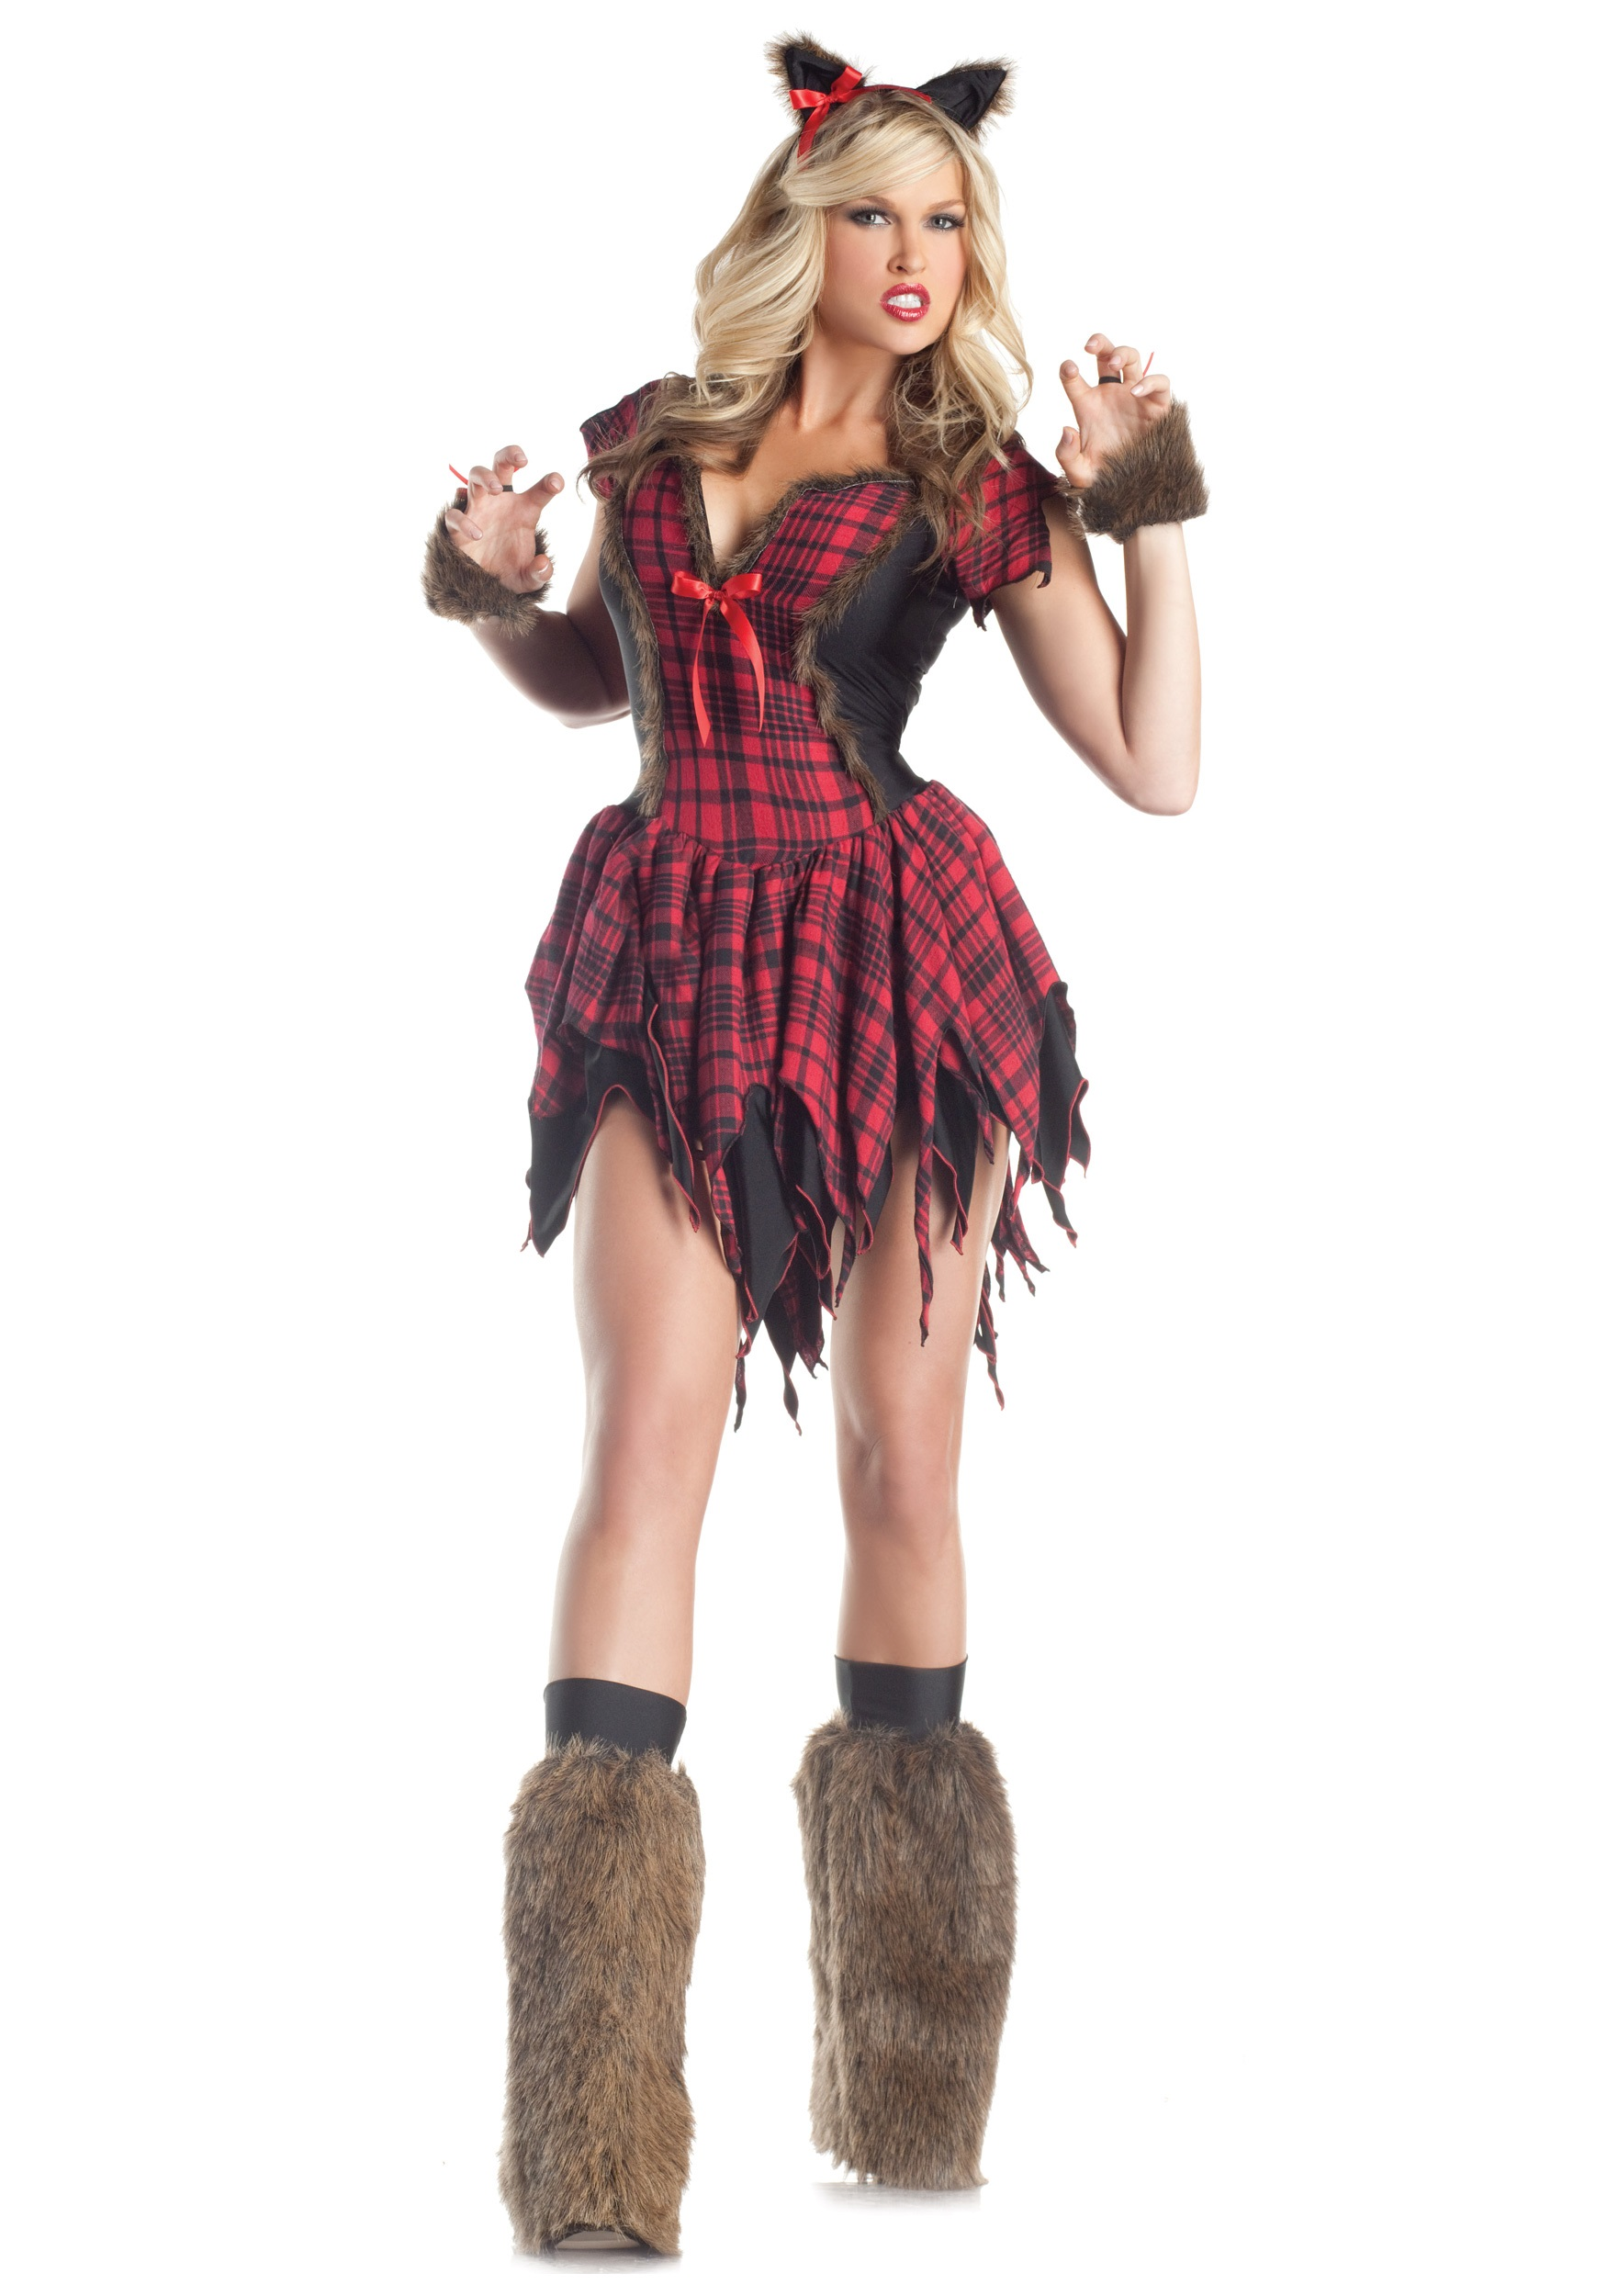 sc 1 st  Halloween Costumes : werewolf costume women  - Germanpascual.Com